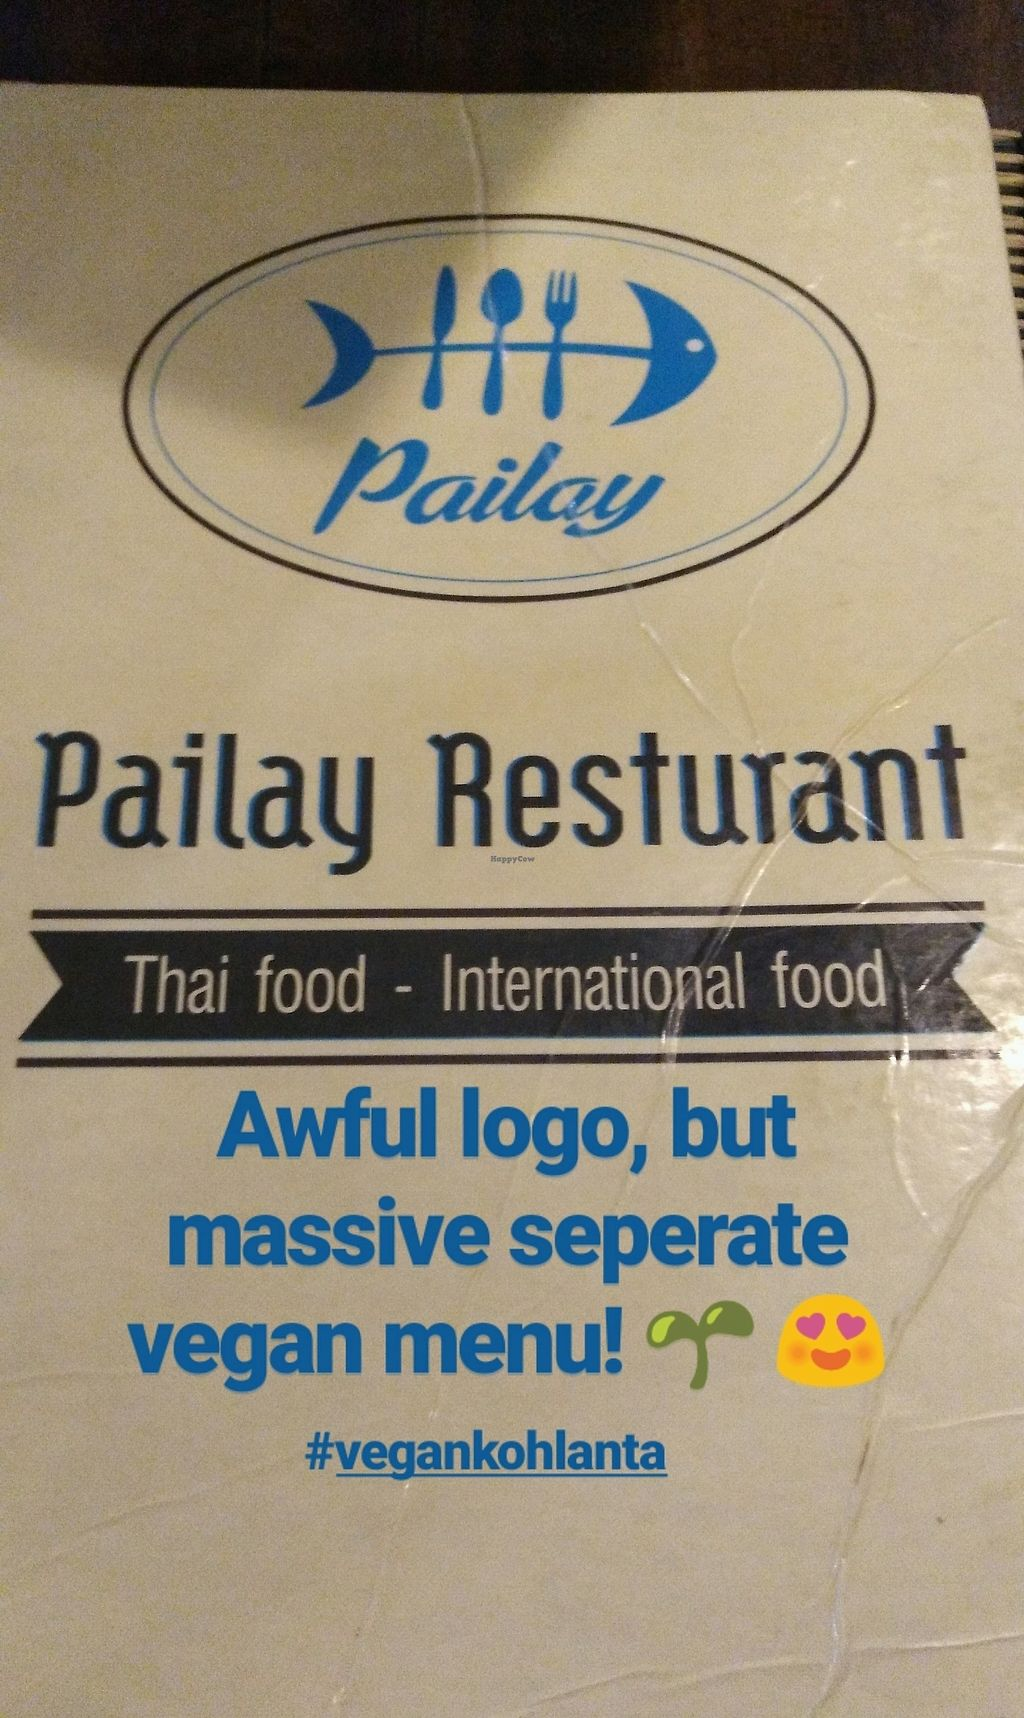 """Photo of Pailay  by <a href=""""/members/profile/NicoleButler"""">NicoleButler</a> <br/>Don't let the fishy logo deter you!  <br/> April 13, 2018  - <a href='/contact/abuse/image/106139/384824'>Report</a>"""